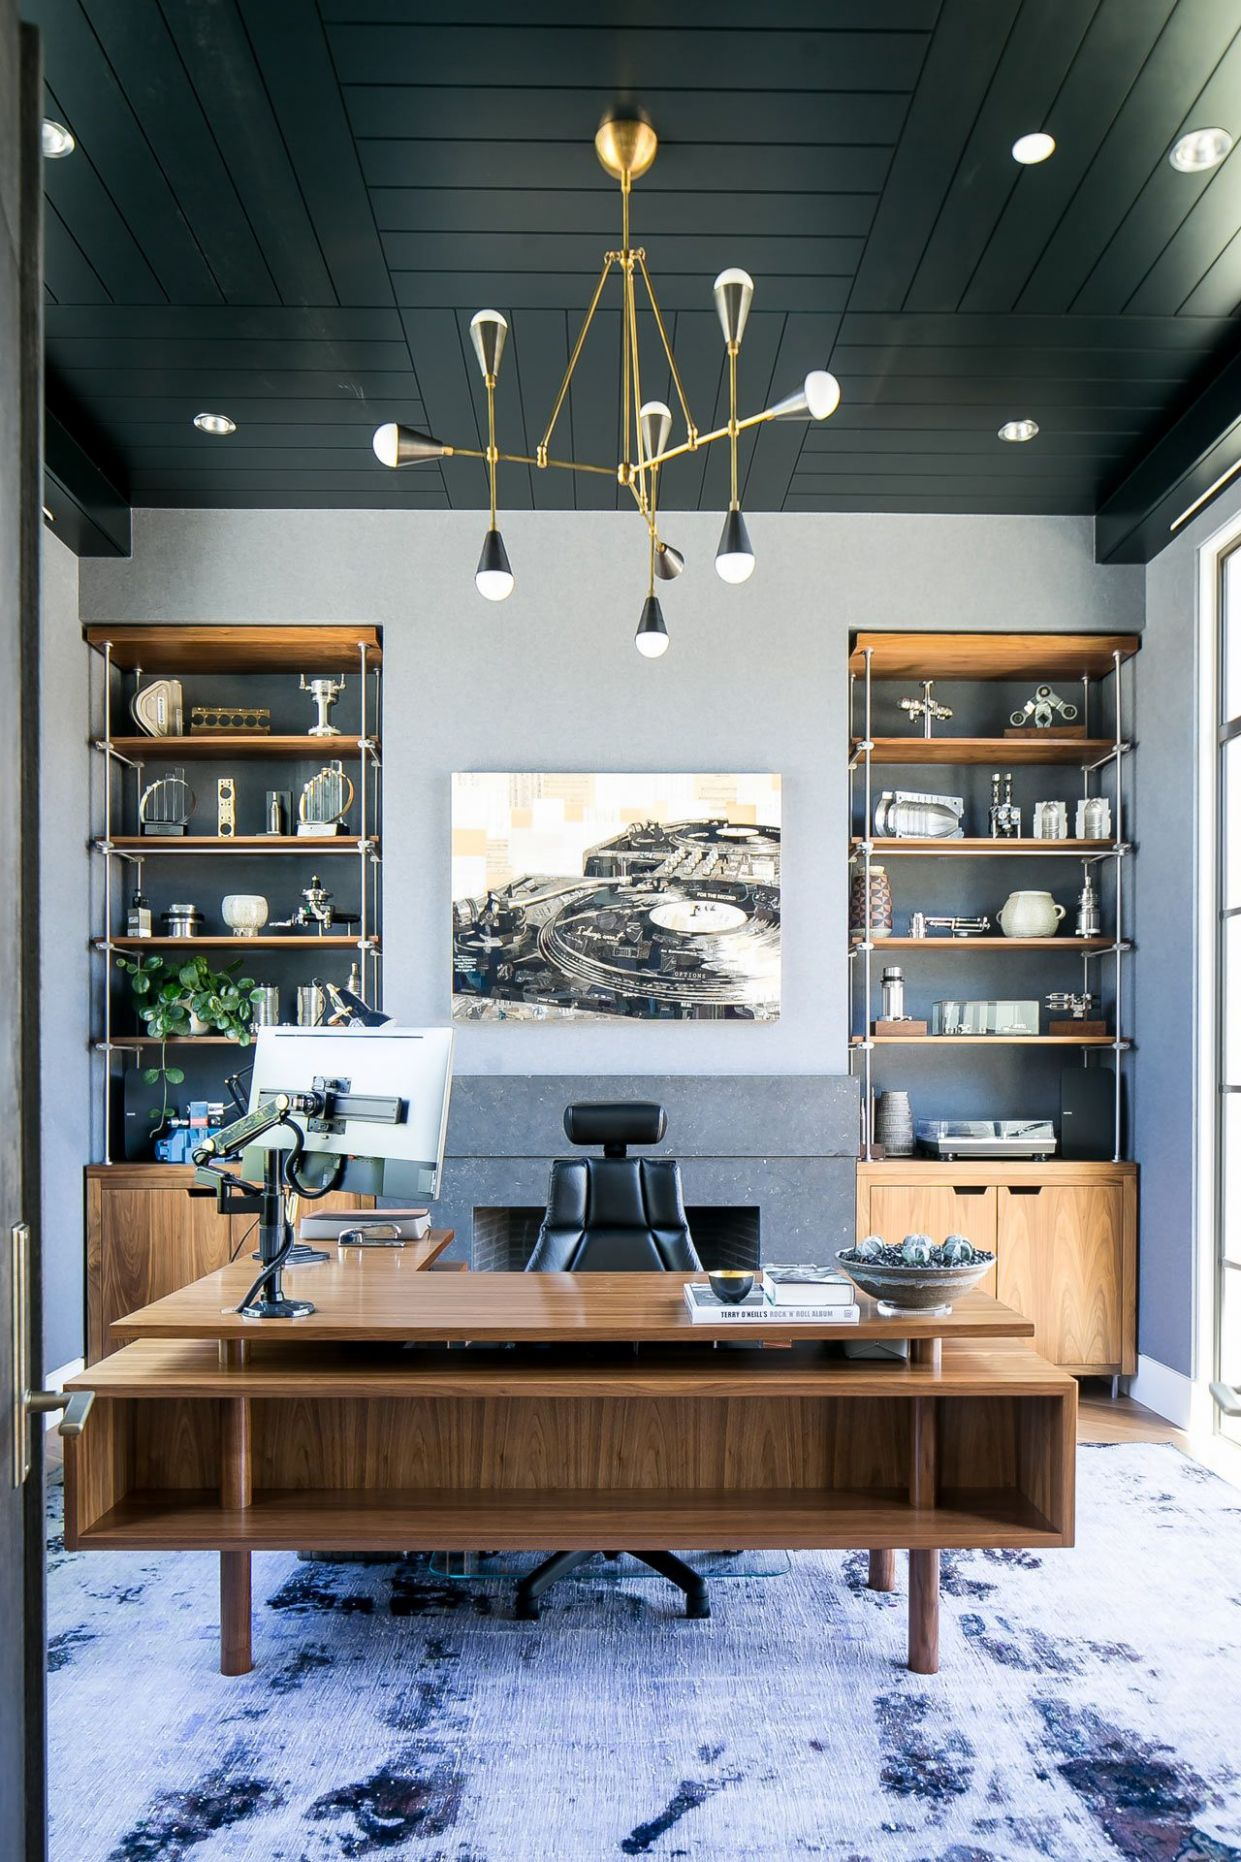 A Newport Beach Home That Merges Modern and Traditional | Home ...